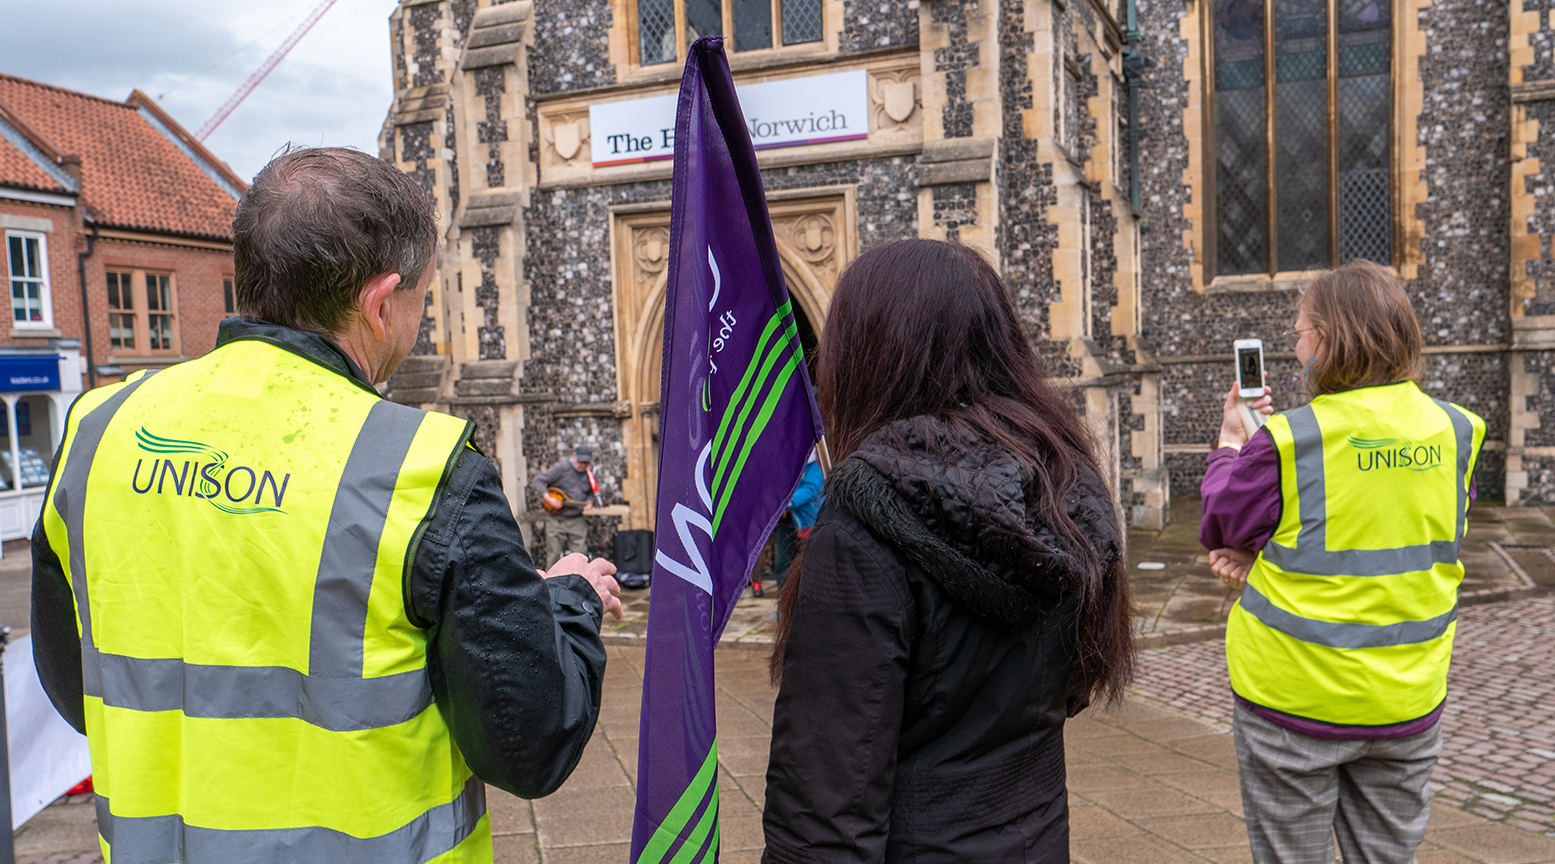 UNISON activists protest outside the Halls in Norwich